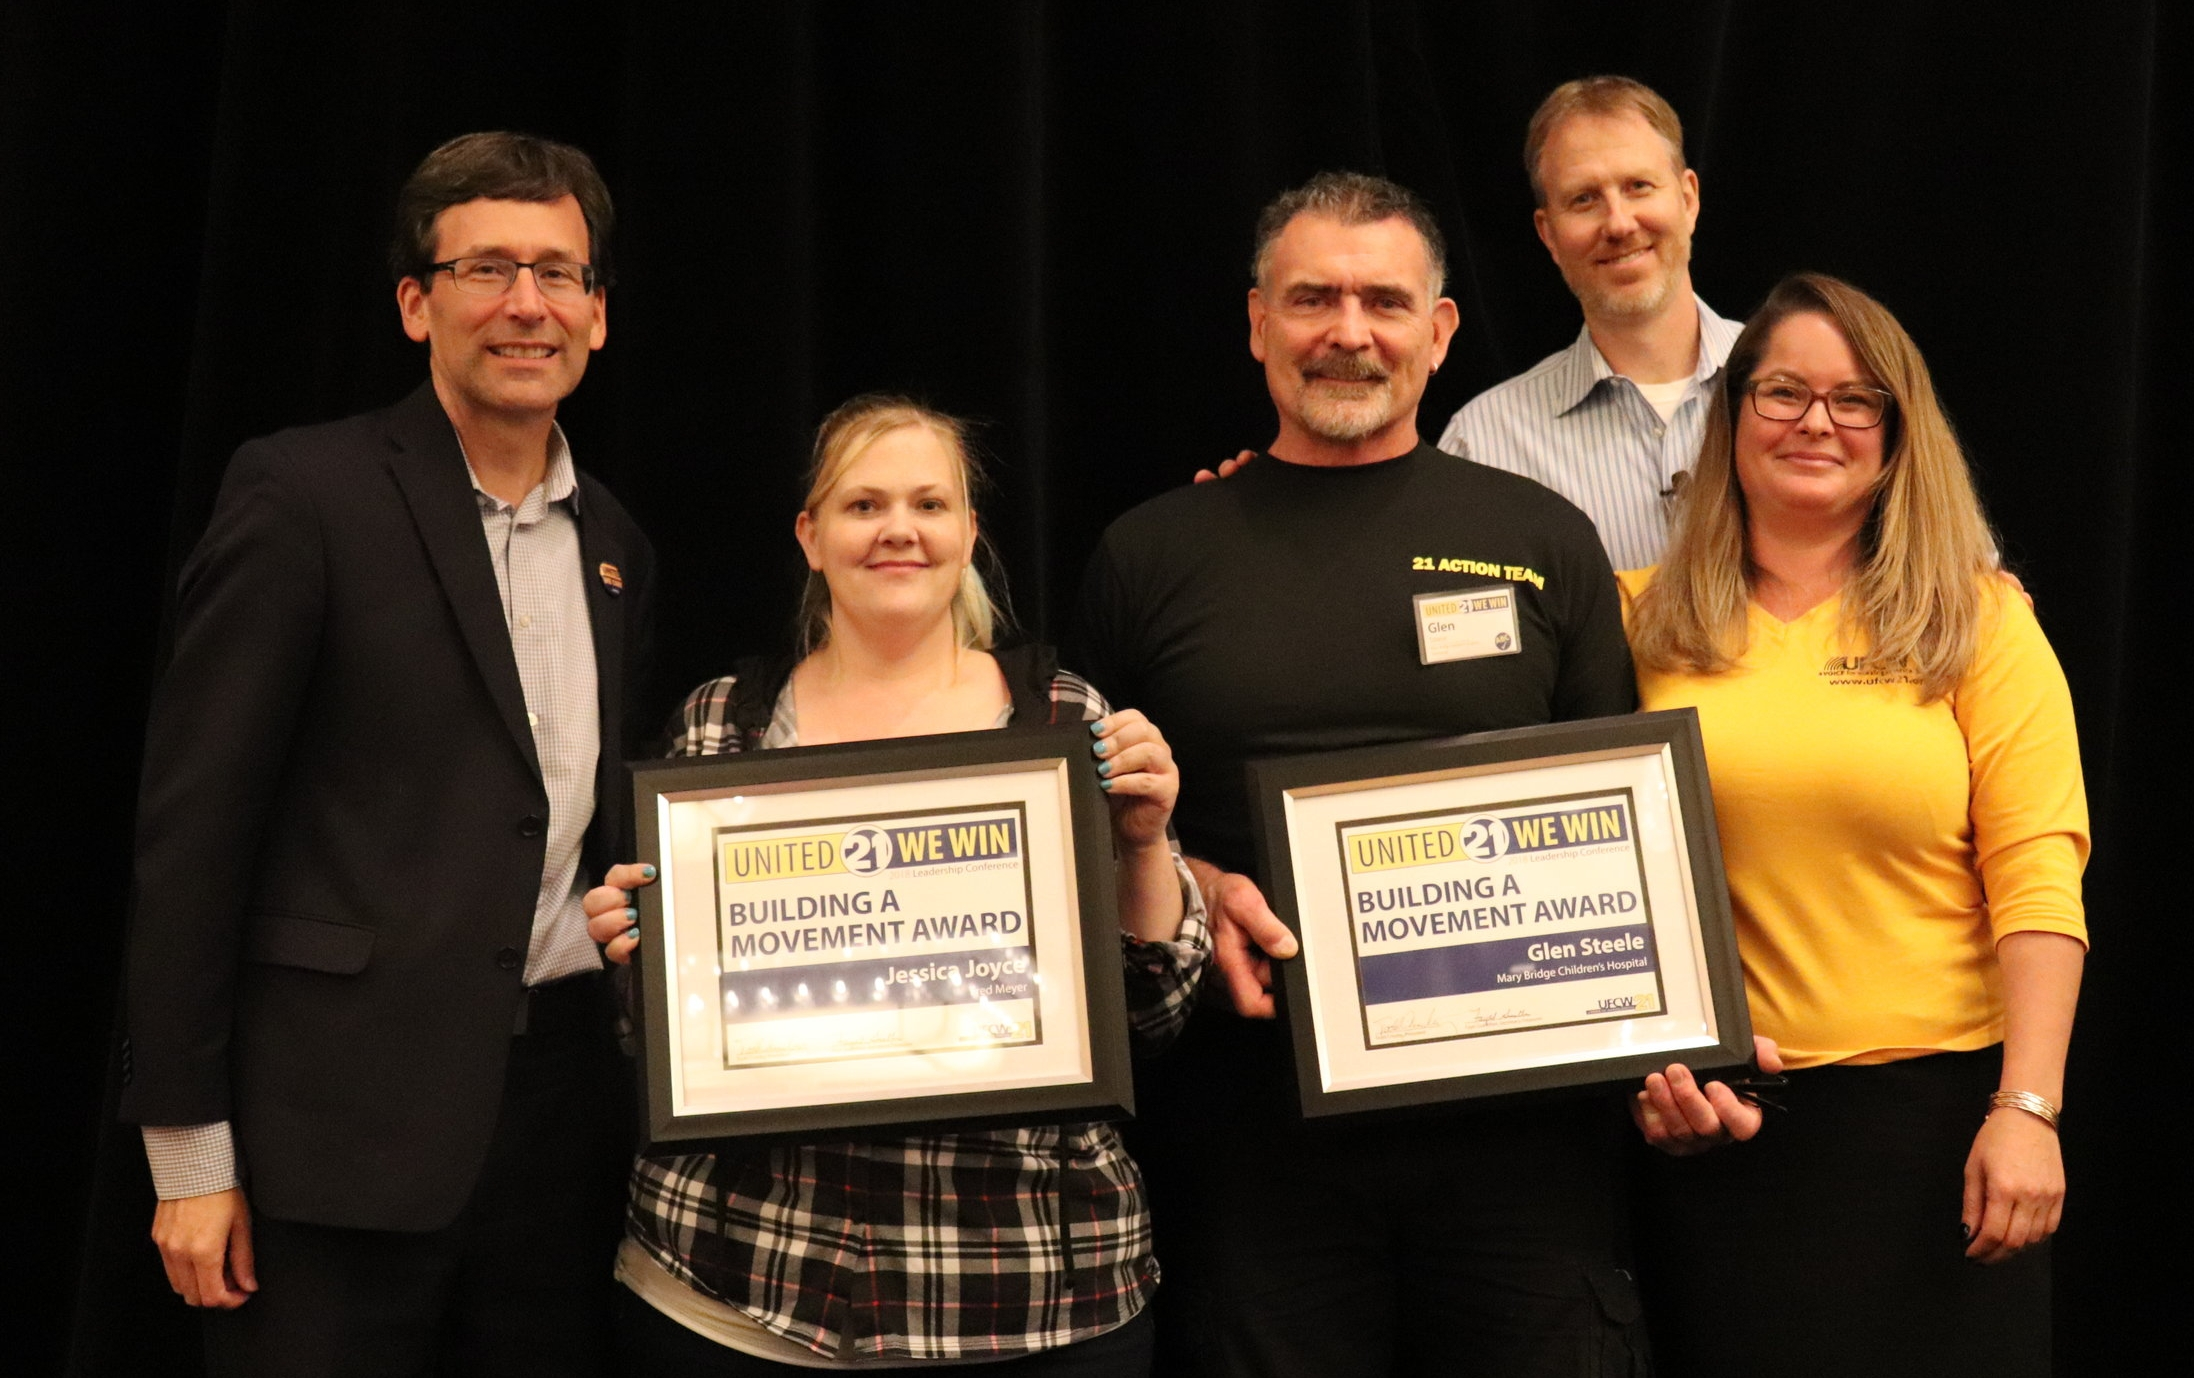 Building A Movement Award winners Jessica Joyce from Fred Meyer and Glen Steele from Mary Bridge Children's Hospital